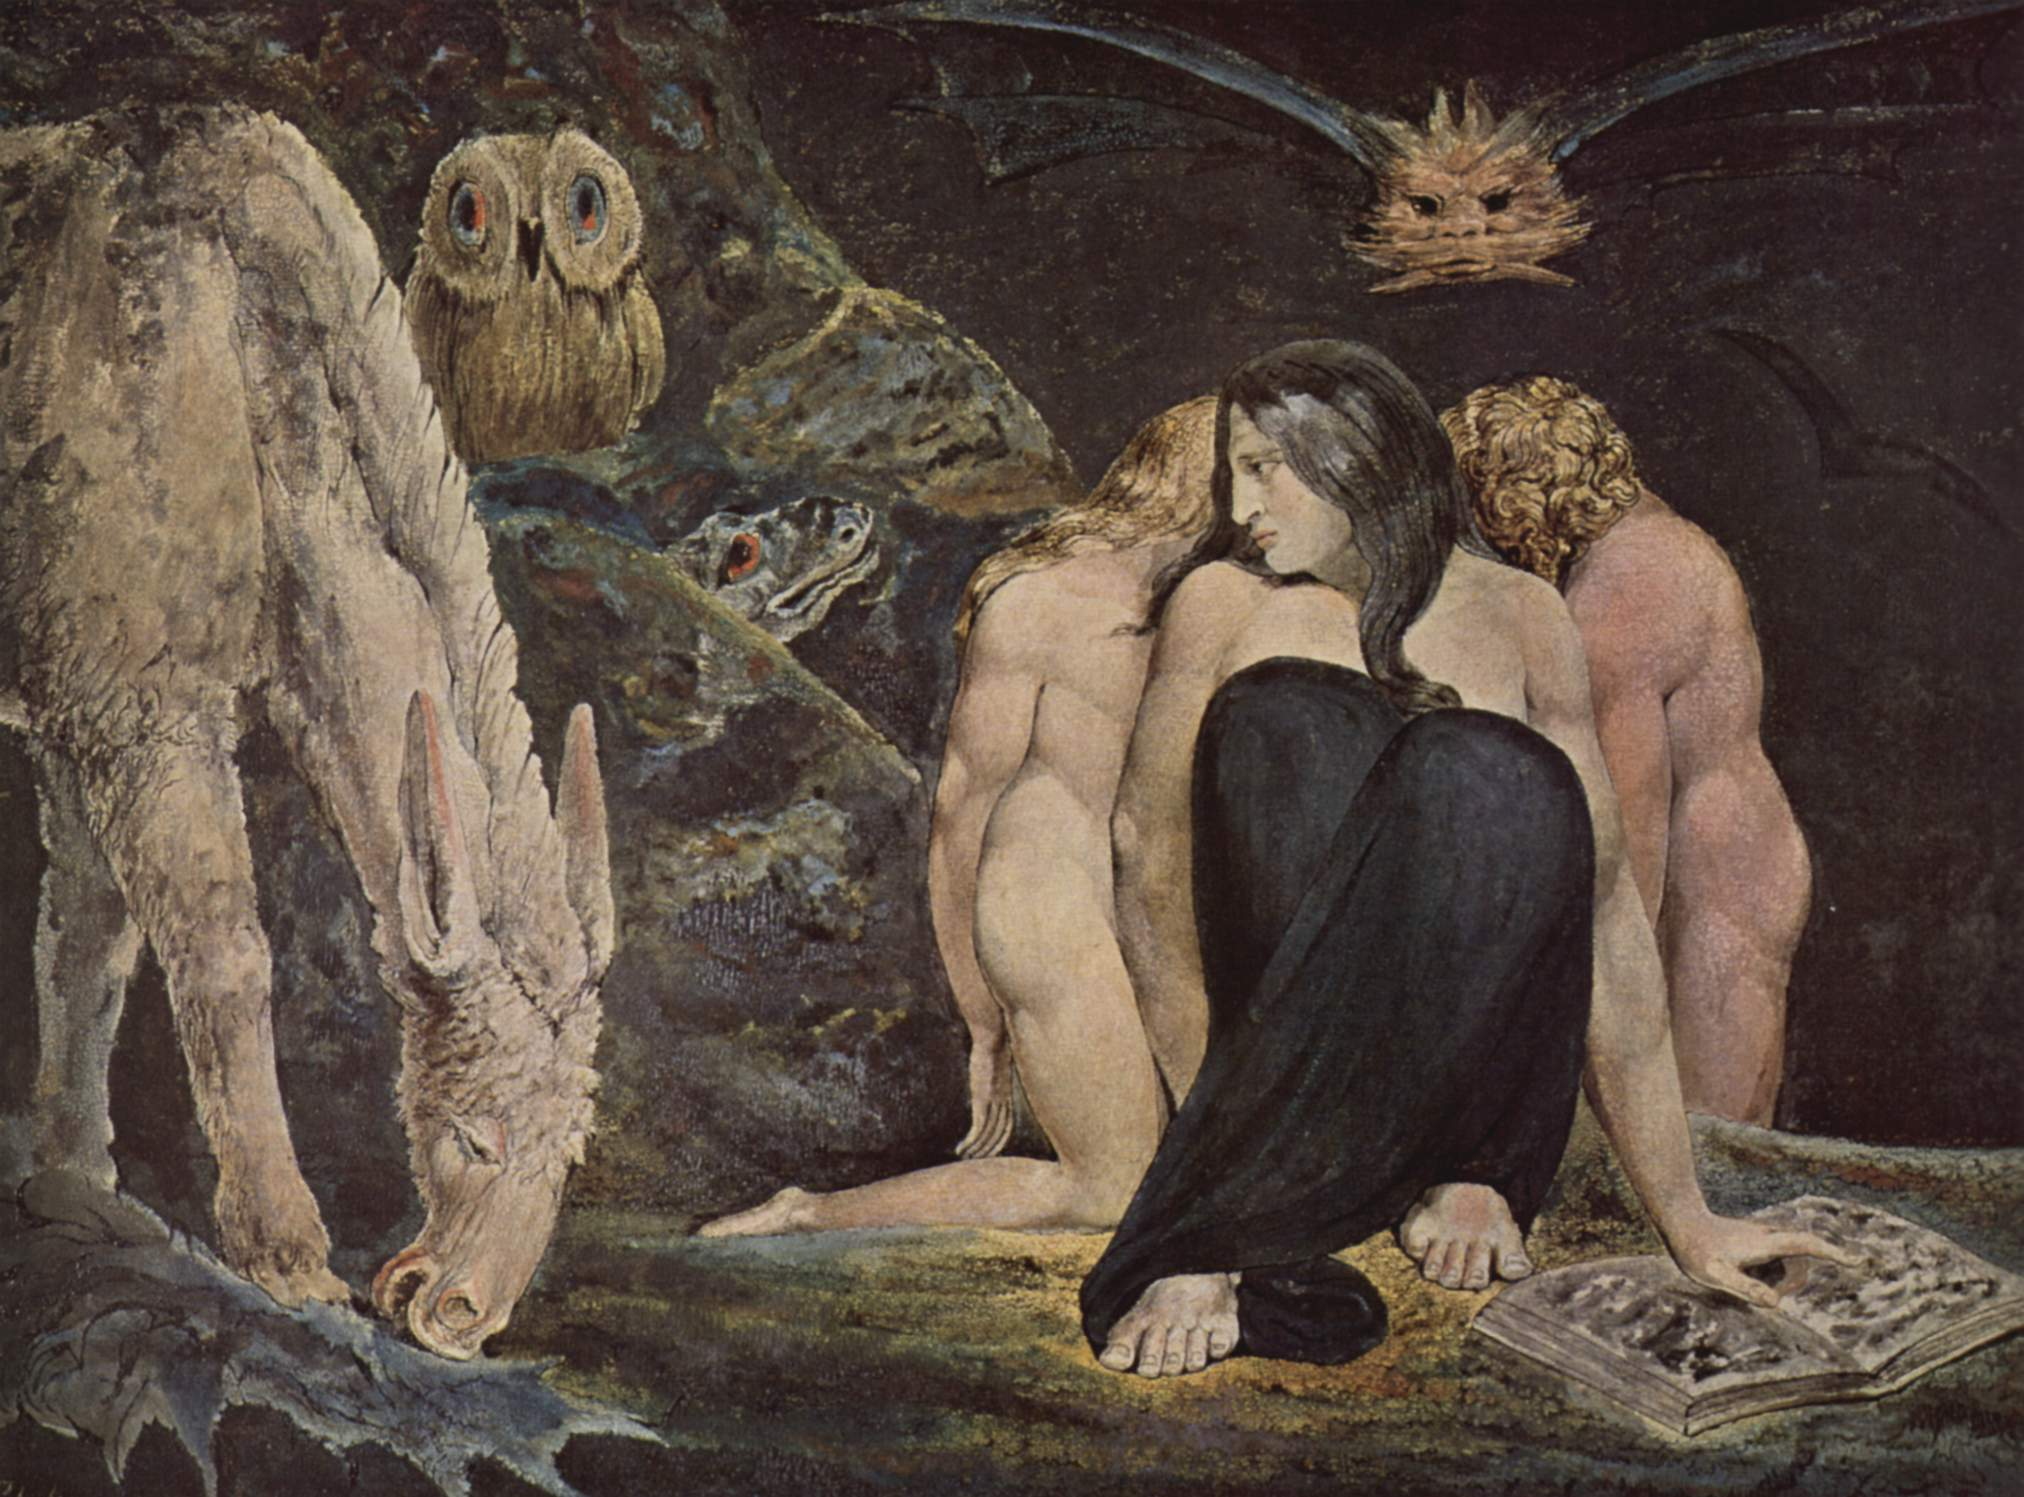 Hecate The Night of Enitharmon`s Joy by William Blake (1795)